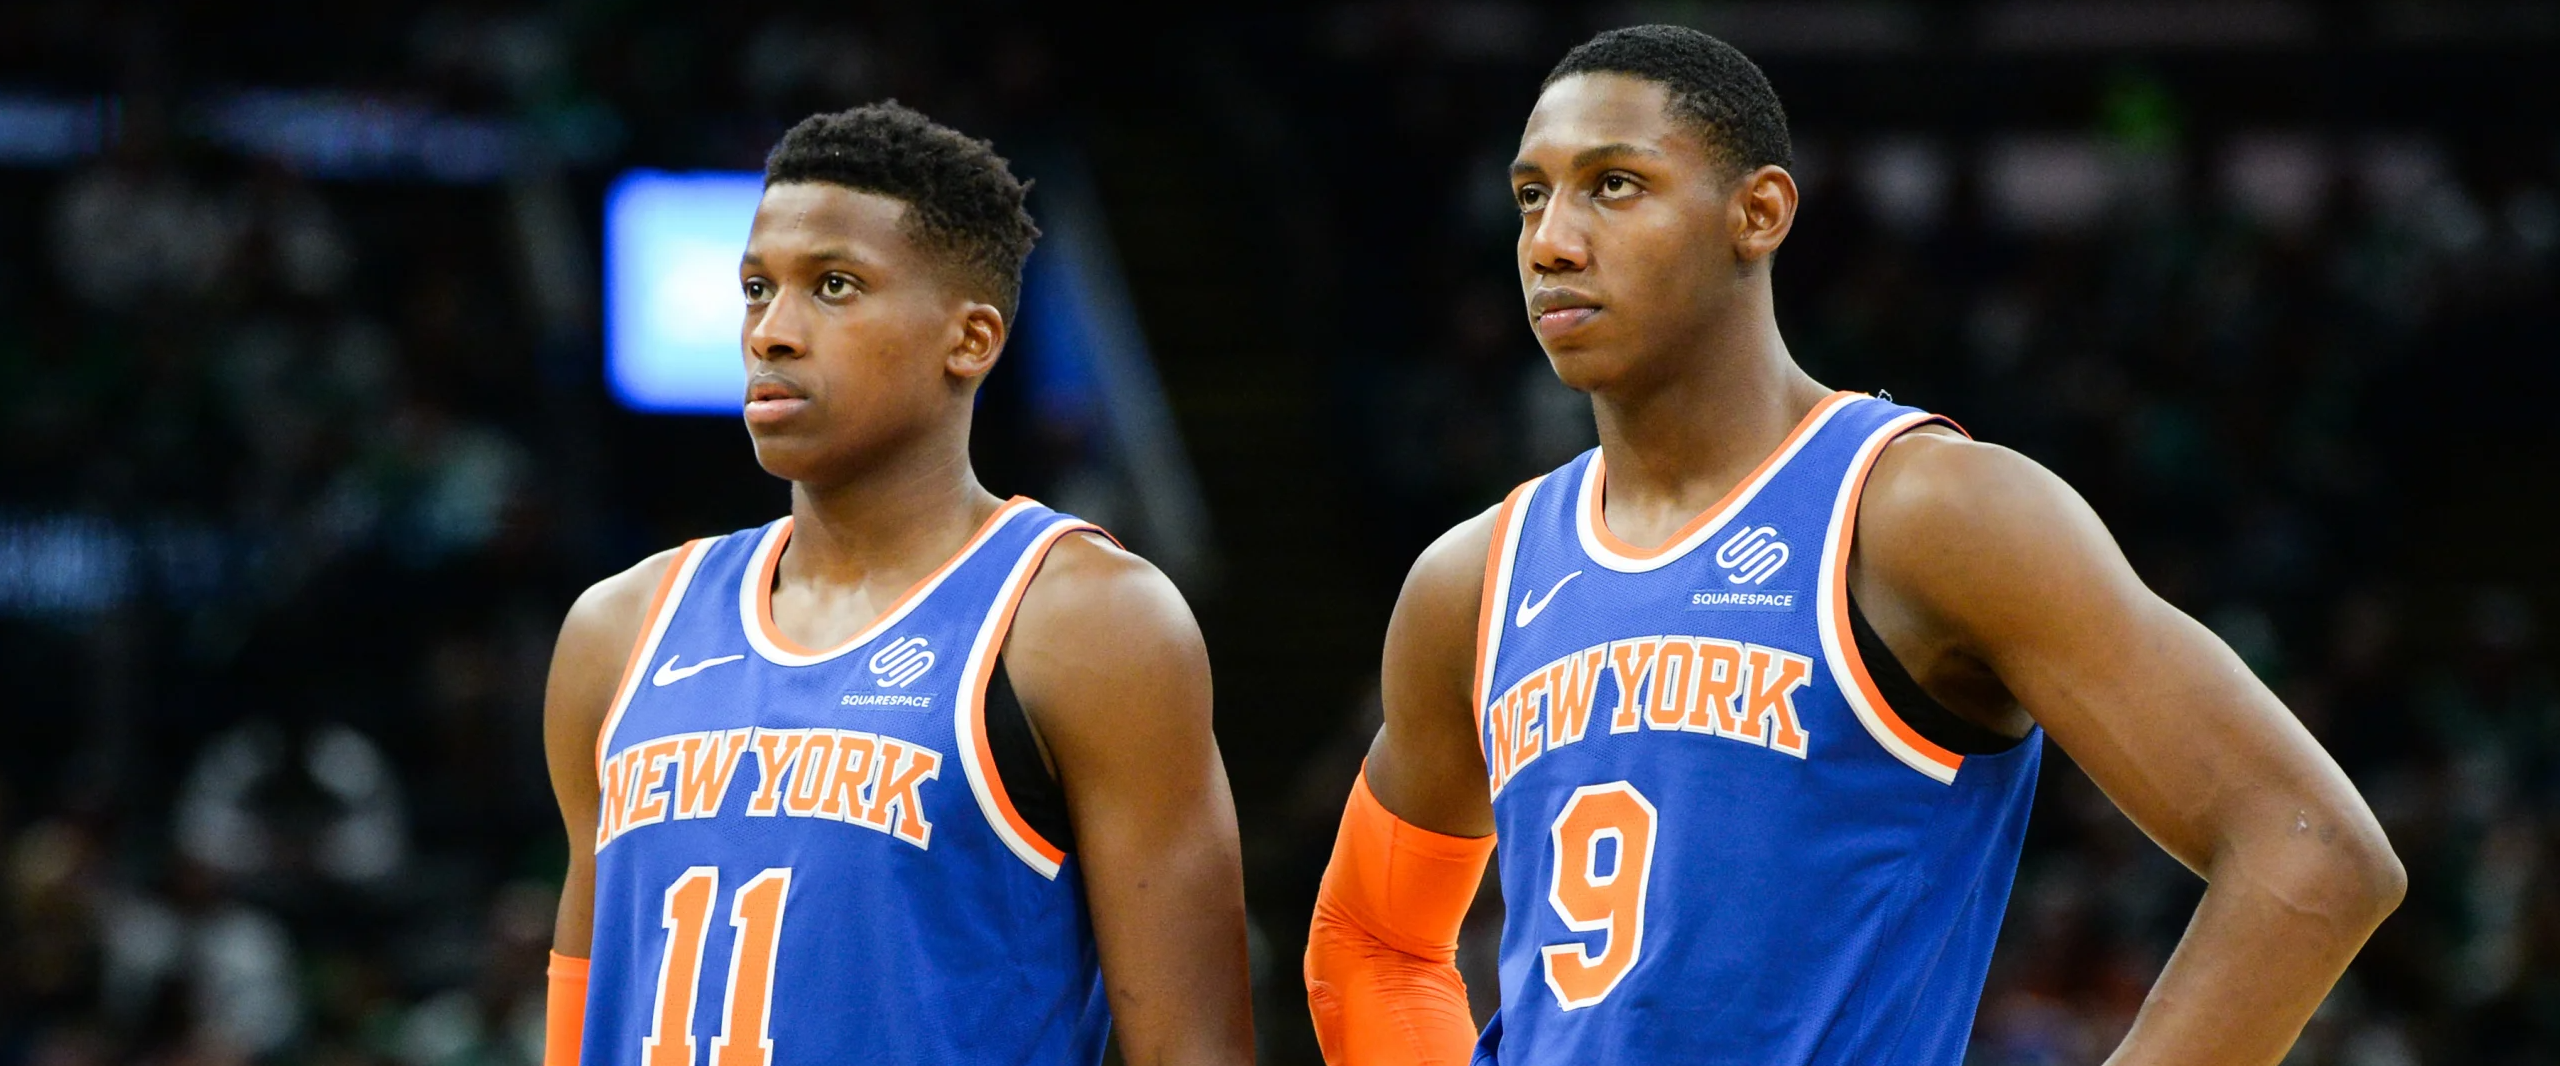 New York Knicks 2021 Preview